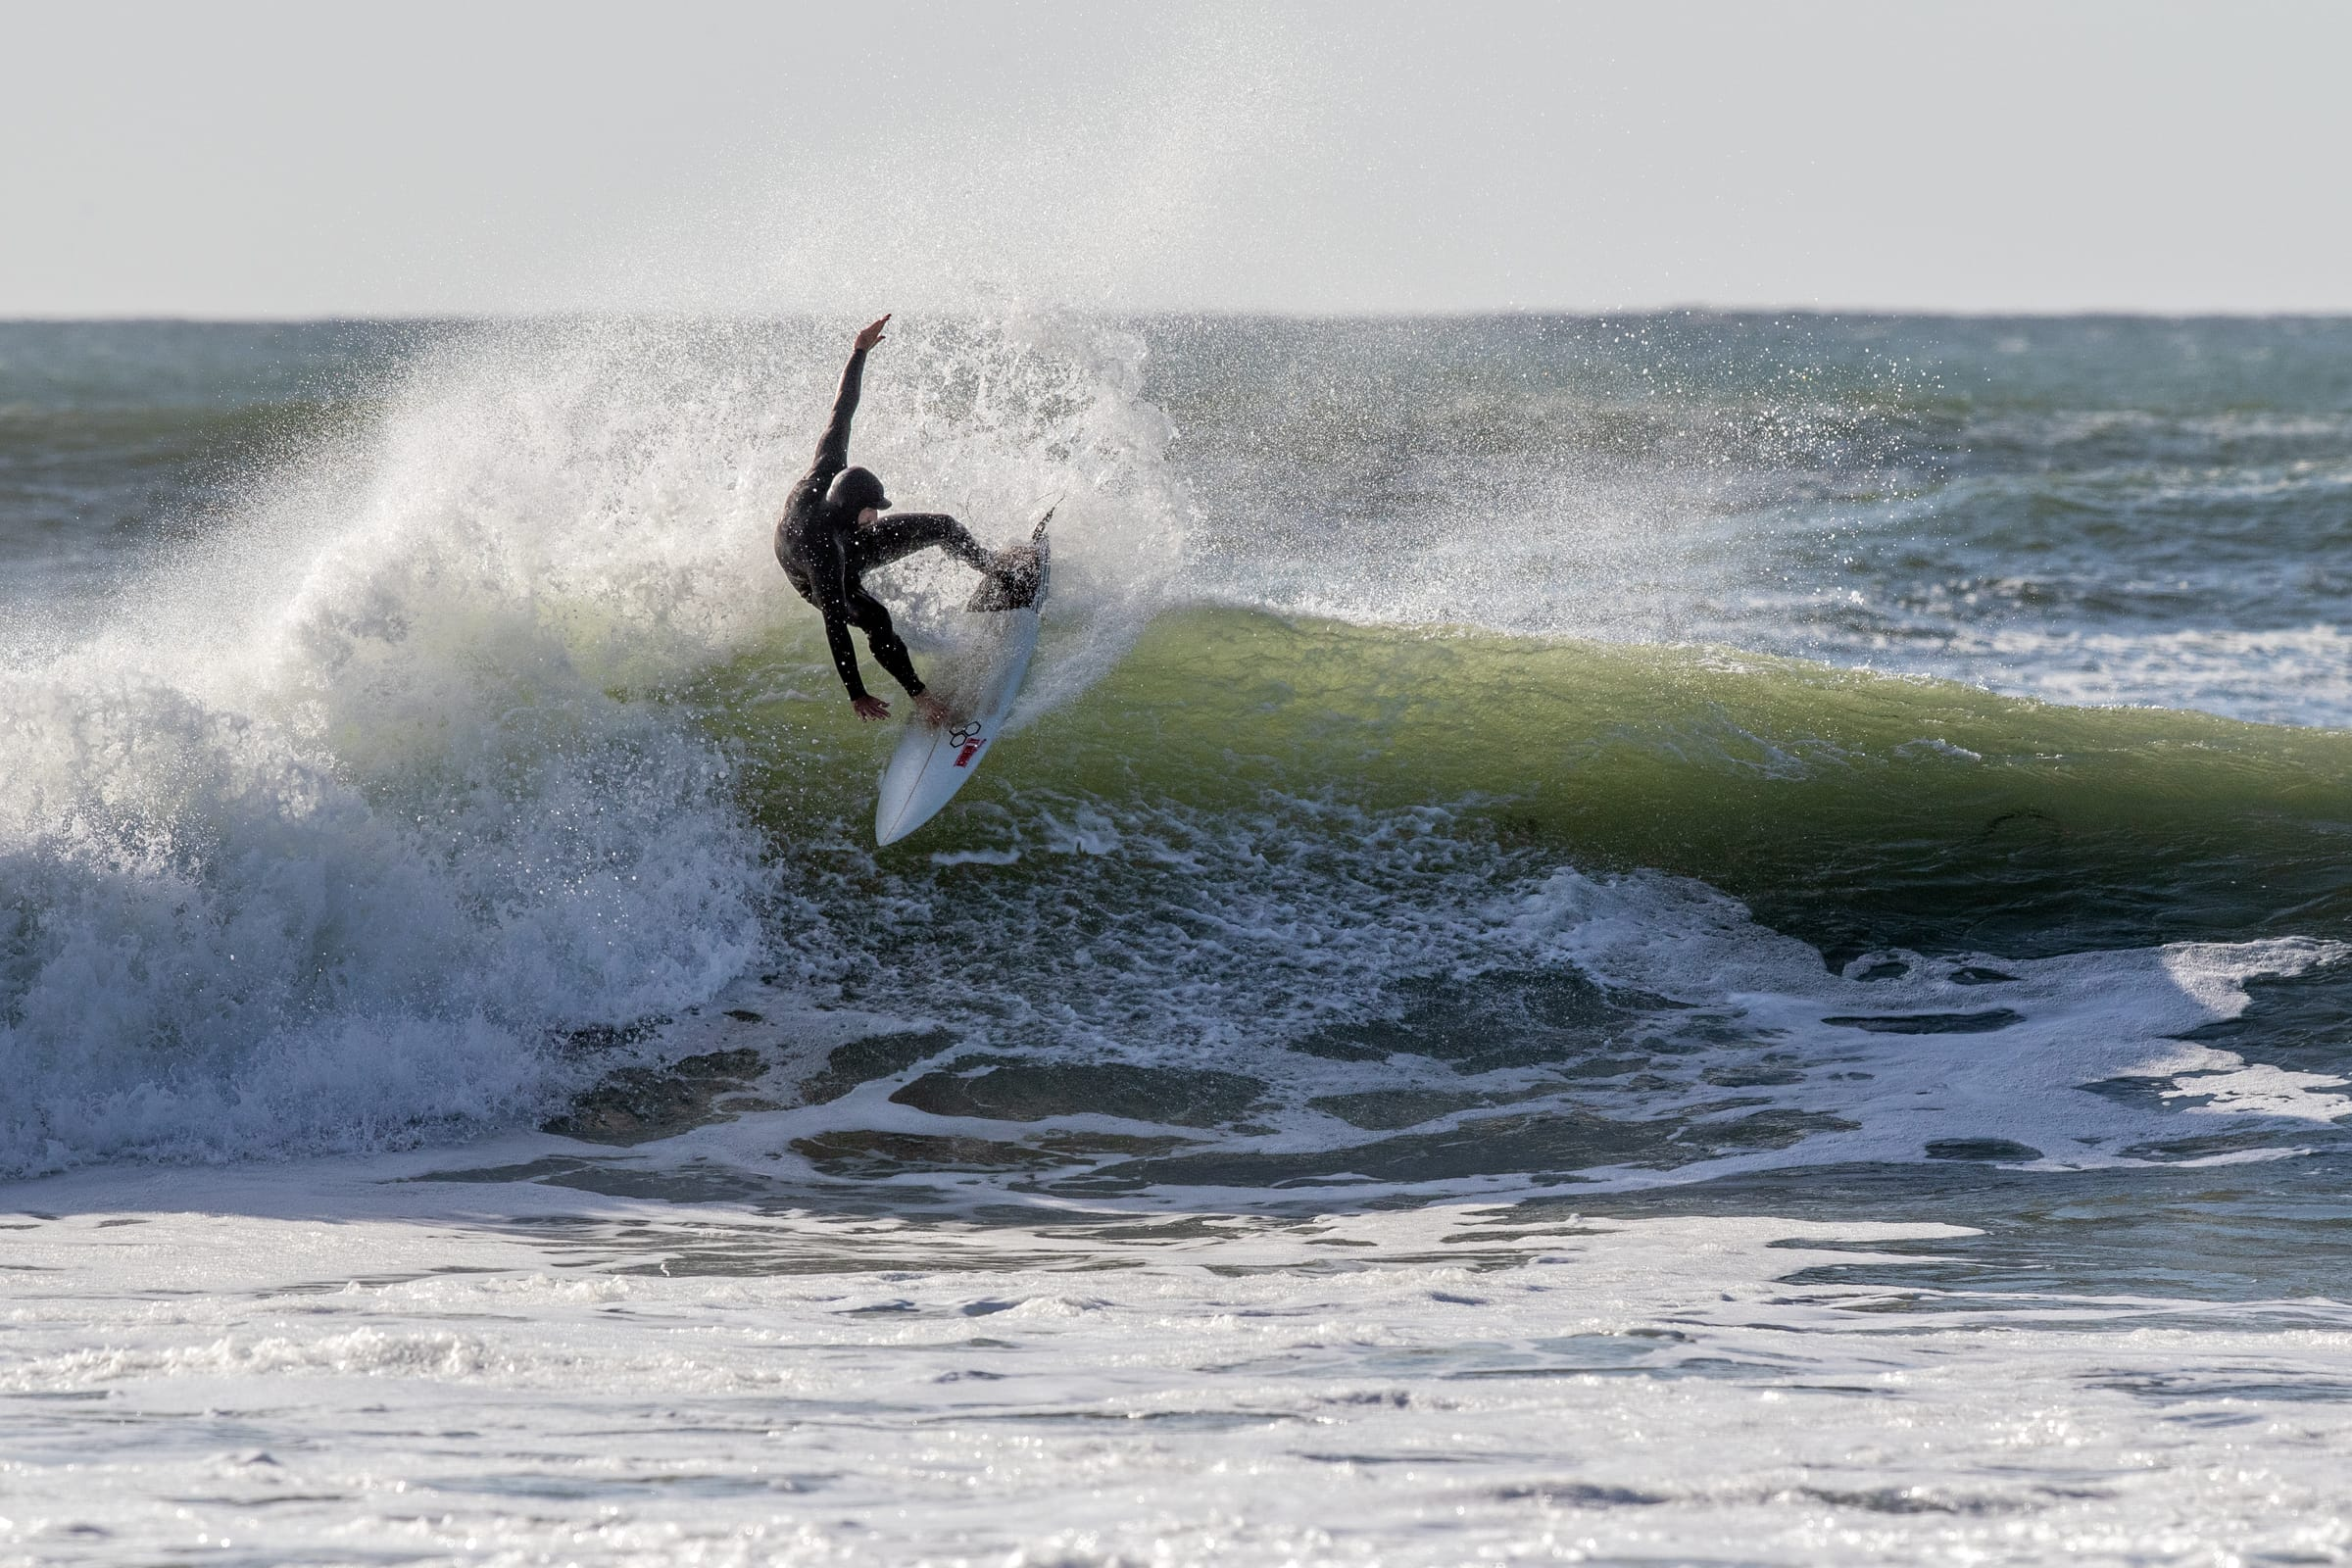 Surfing Elands Bay - pic by John Wilkinson